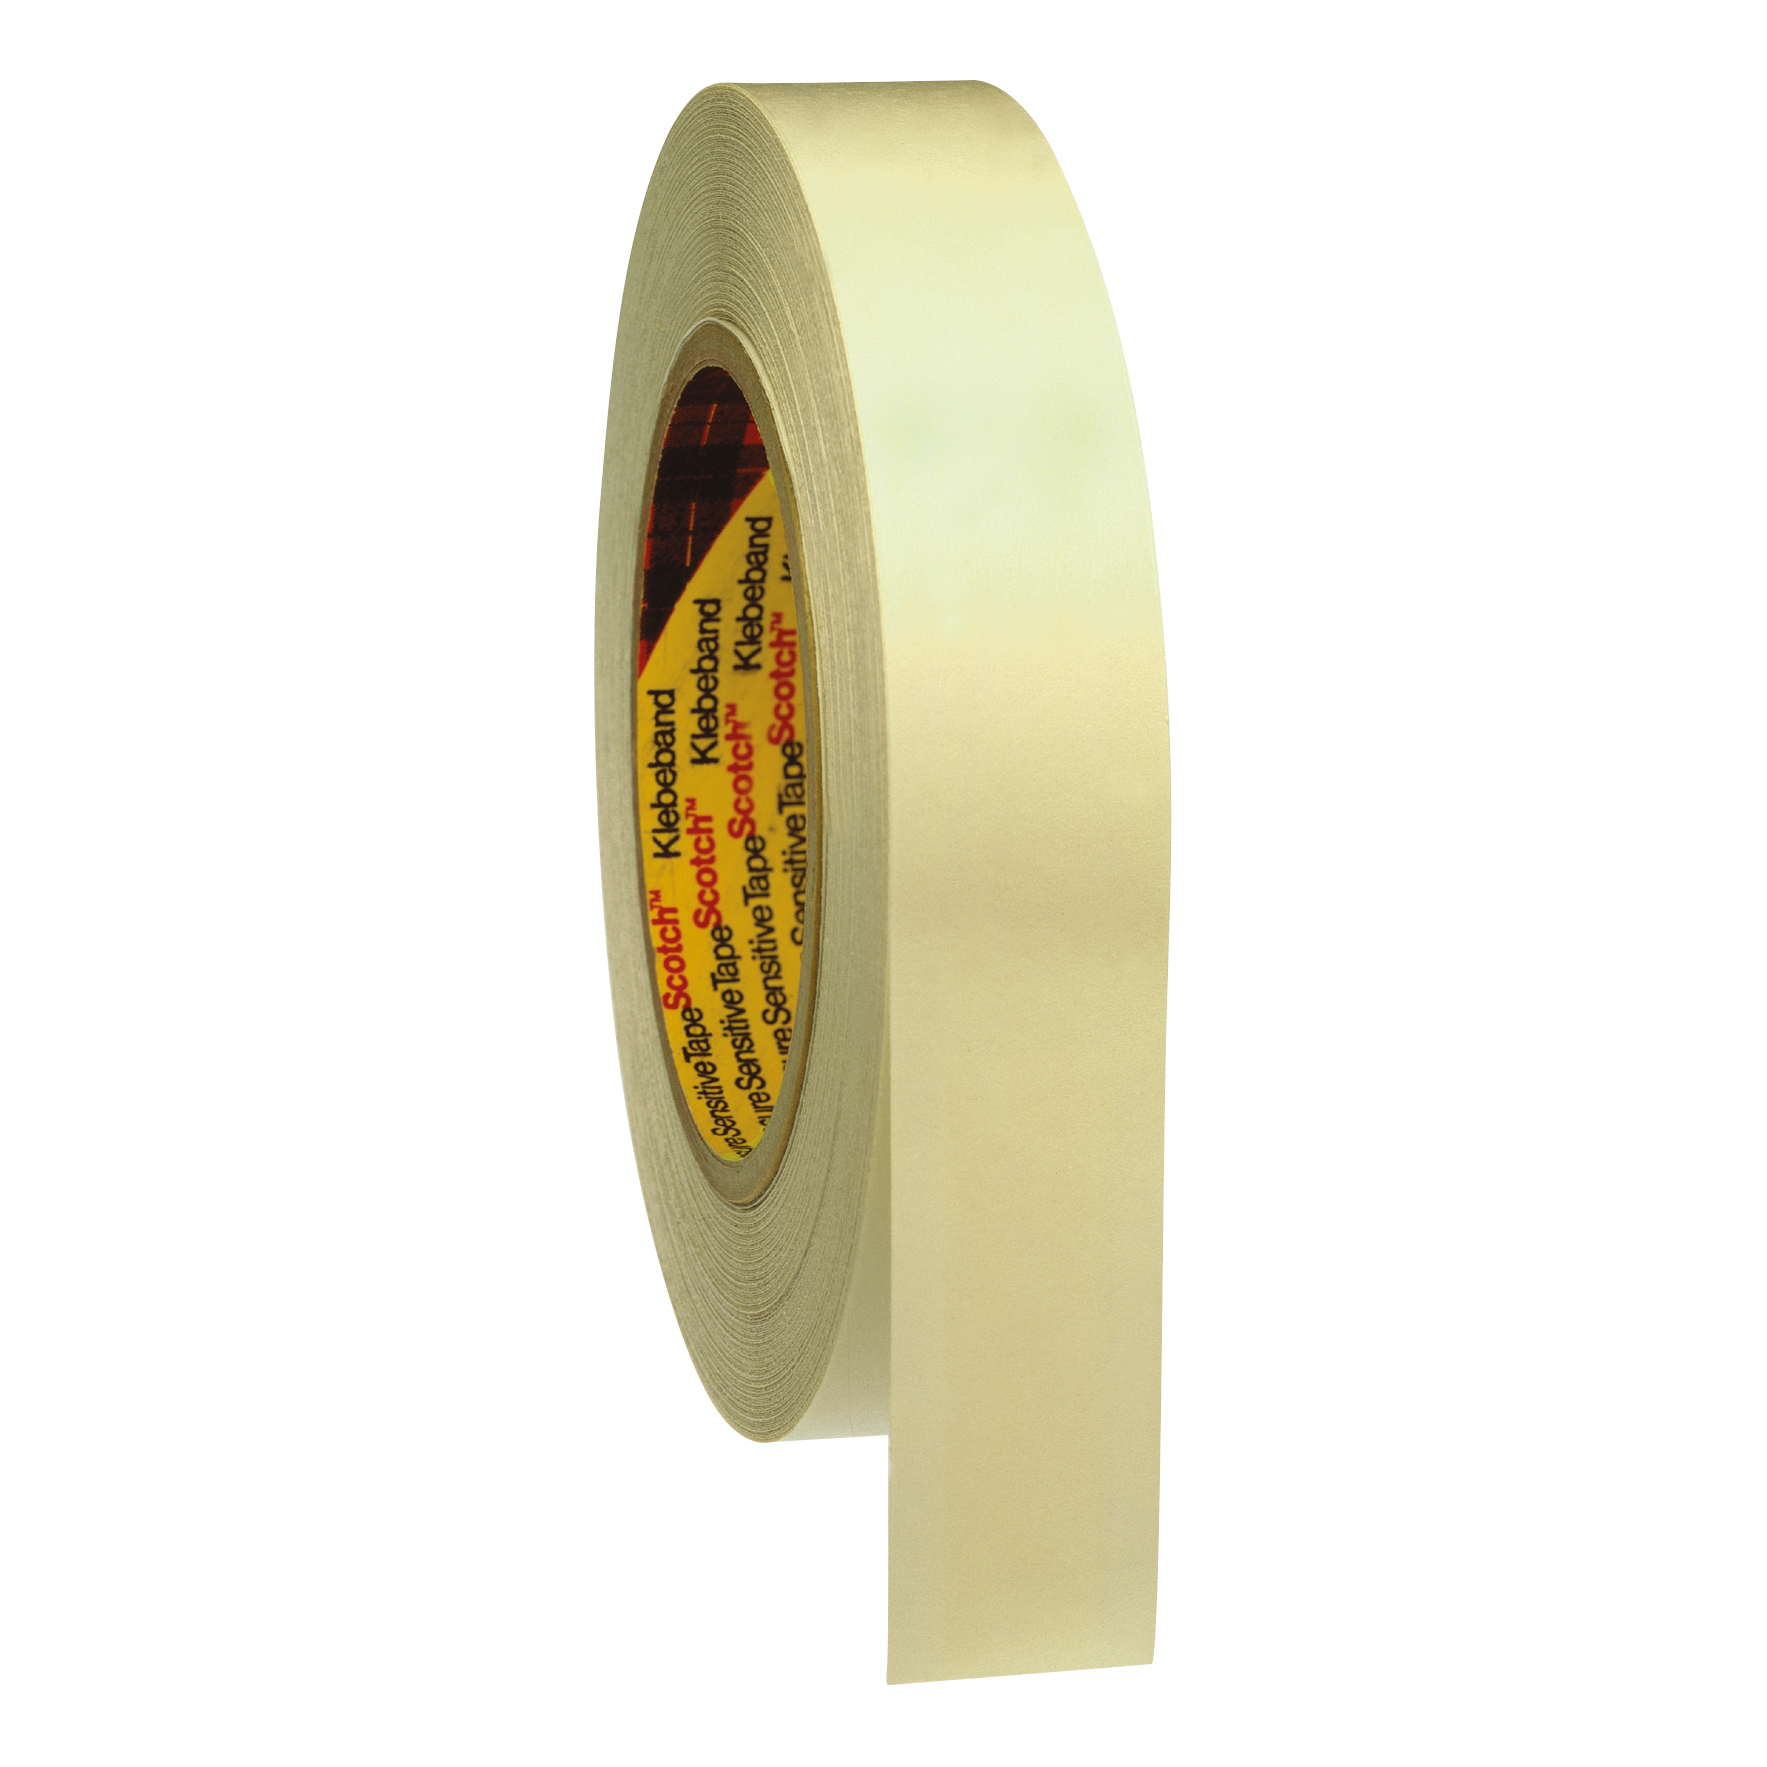 Scotch Artists Tape Double Sided with Liner for Mounting and Holding 12mmx33m Ref DS1233 Pack 12